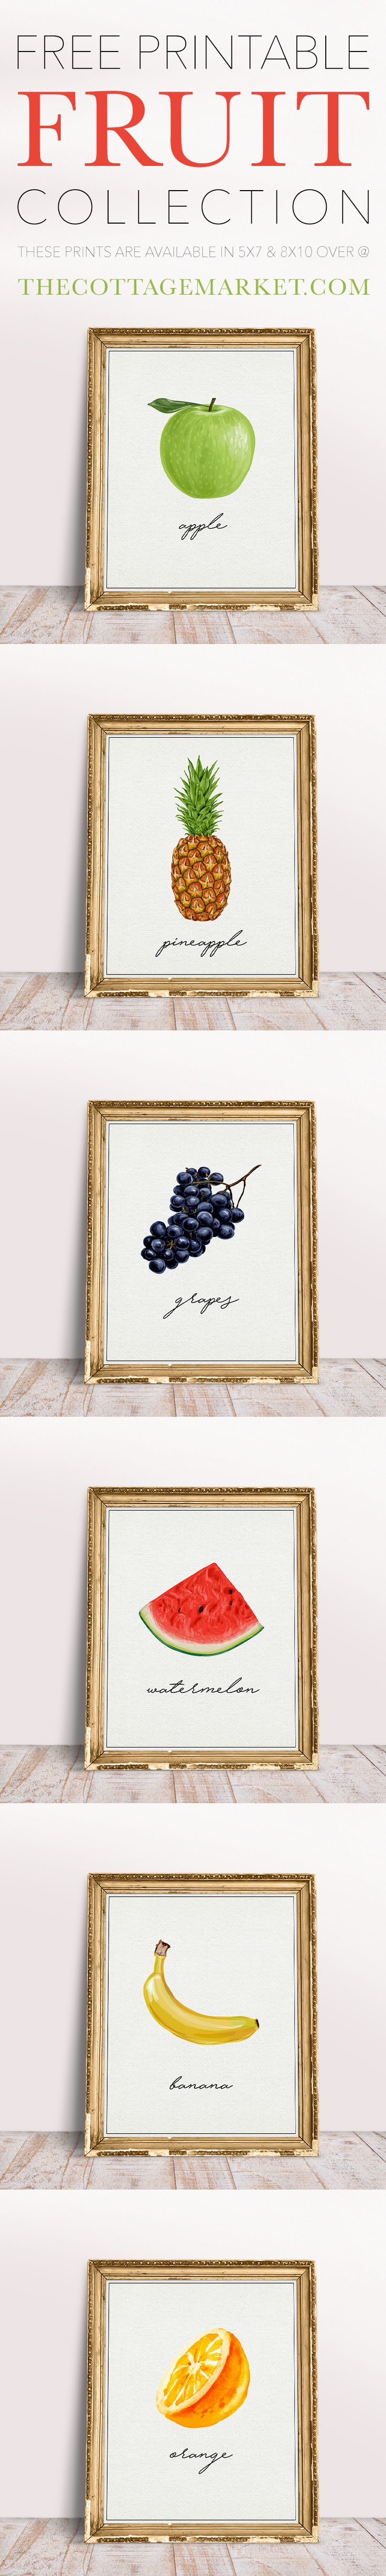 A SIX Piece Collection of our Free Printable Fruit Collection.  These are just waiting to be hung on your walls...displayed in your vignettes...featured on a gallery wall and so much more!